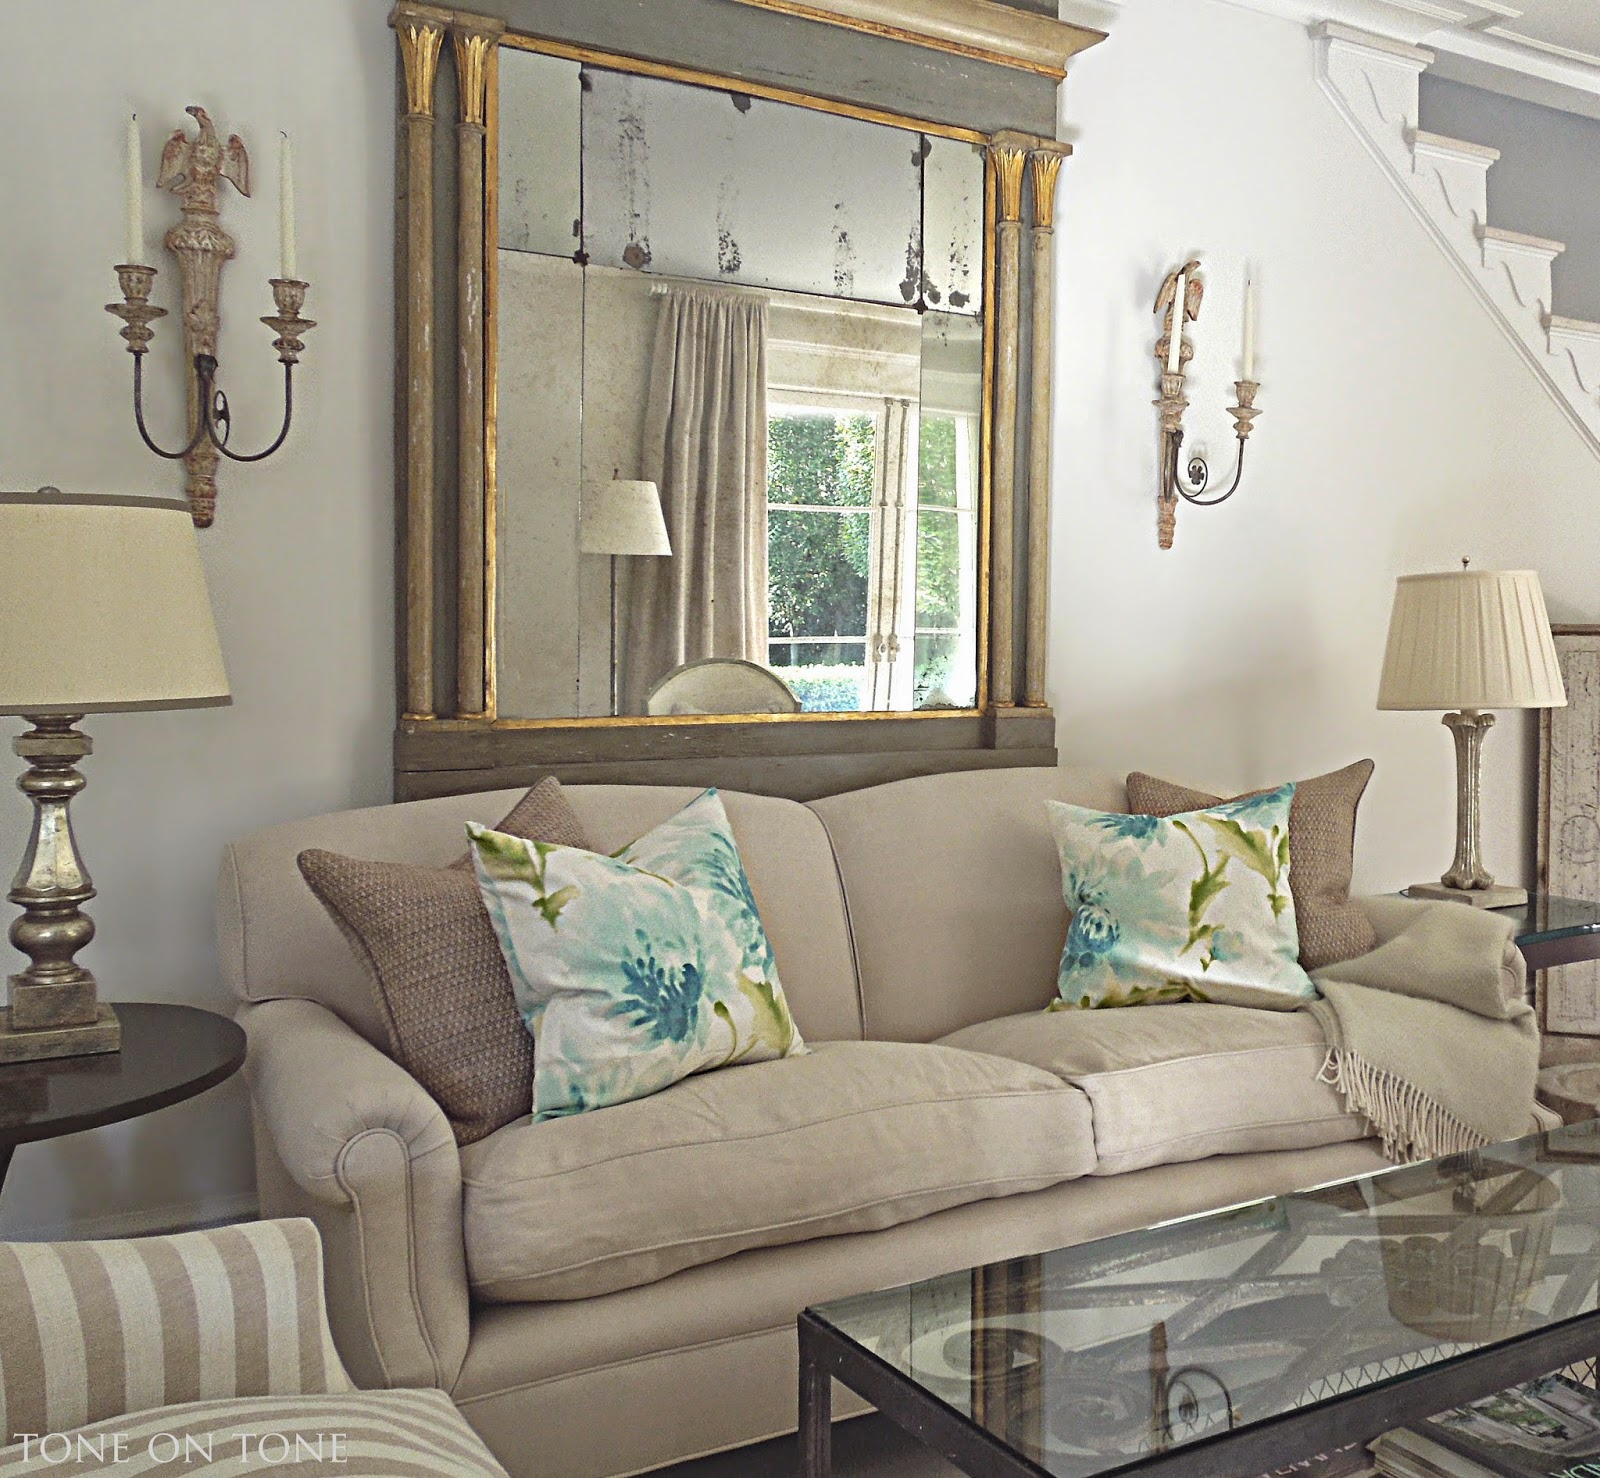 Tone on Tone: Silver Accents + HomeGoods